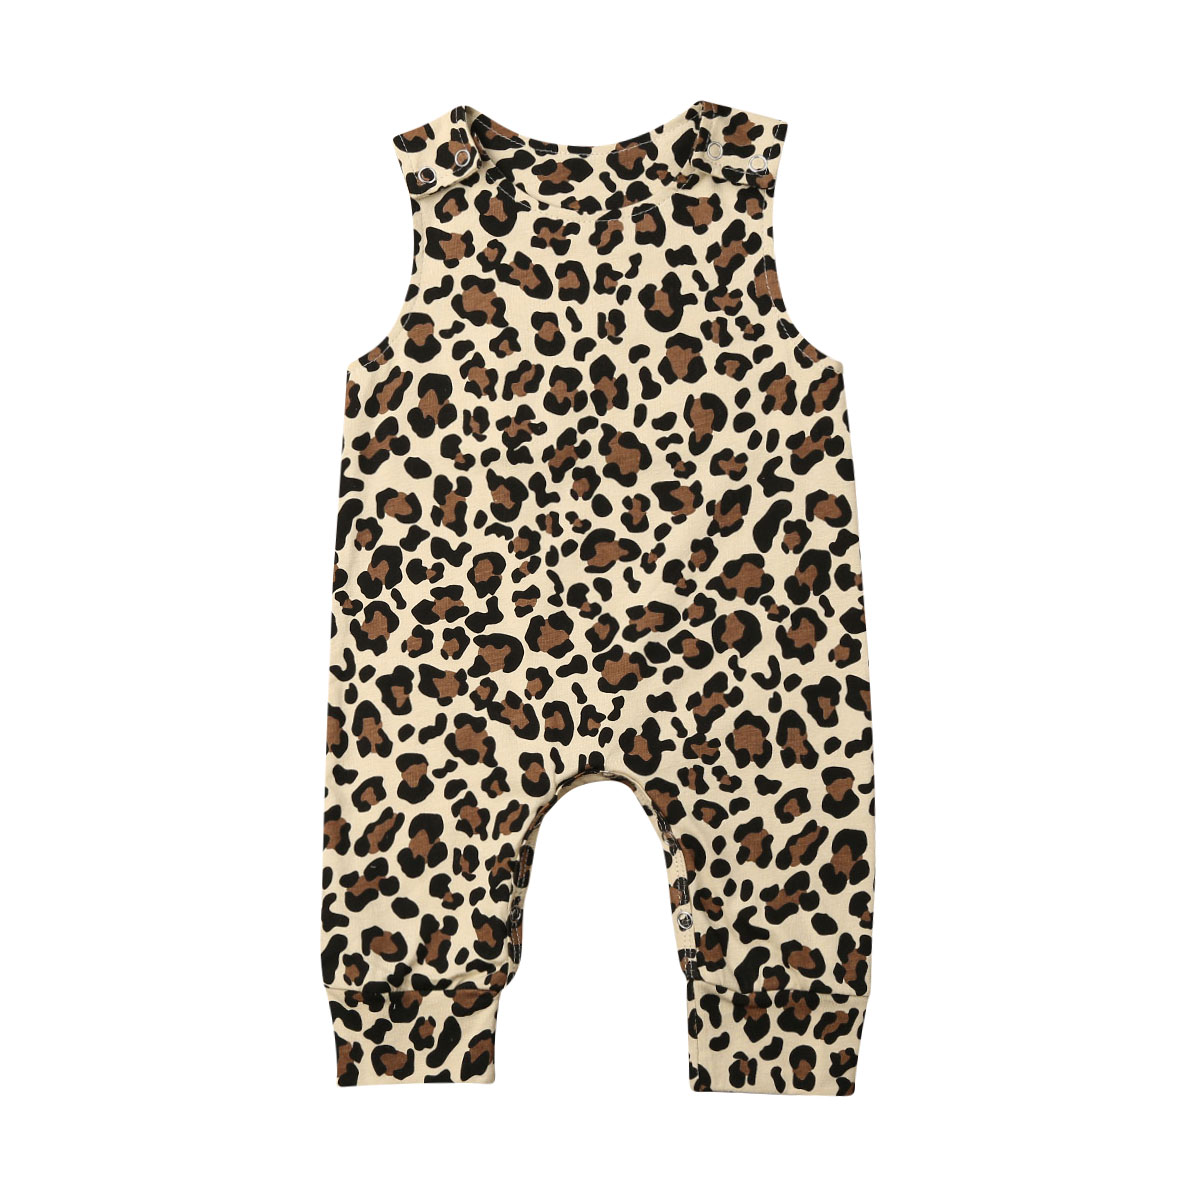 Summer Newborn Baby Girl Boy Clothes Leopard Romper Sleeveless Jumpsuit Outfits Sunsuit